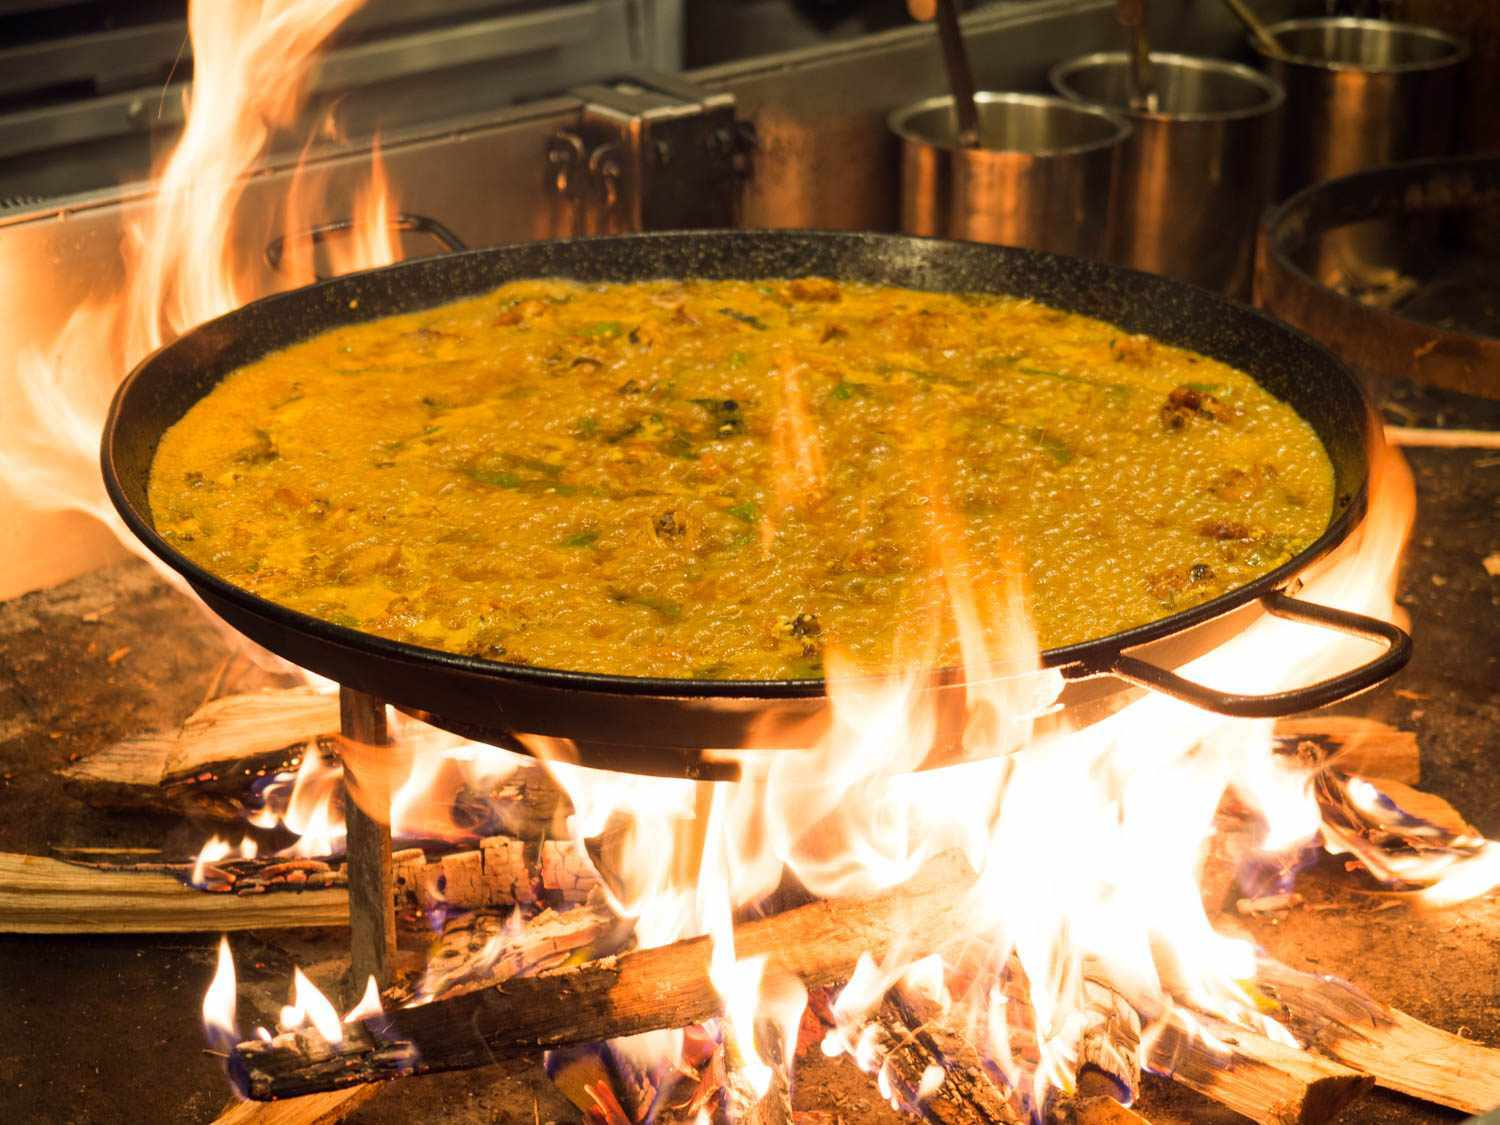 A vegetable paella at Mercado Little Spain in NYC, with a blazing wood fire shooting flames up and around the large paella pan. Using thin pieces of wood allows the cook to get a huge fire going very quickly, and then let it die down very quickly as well.